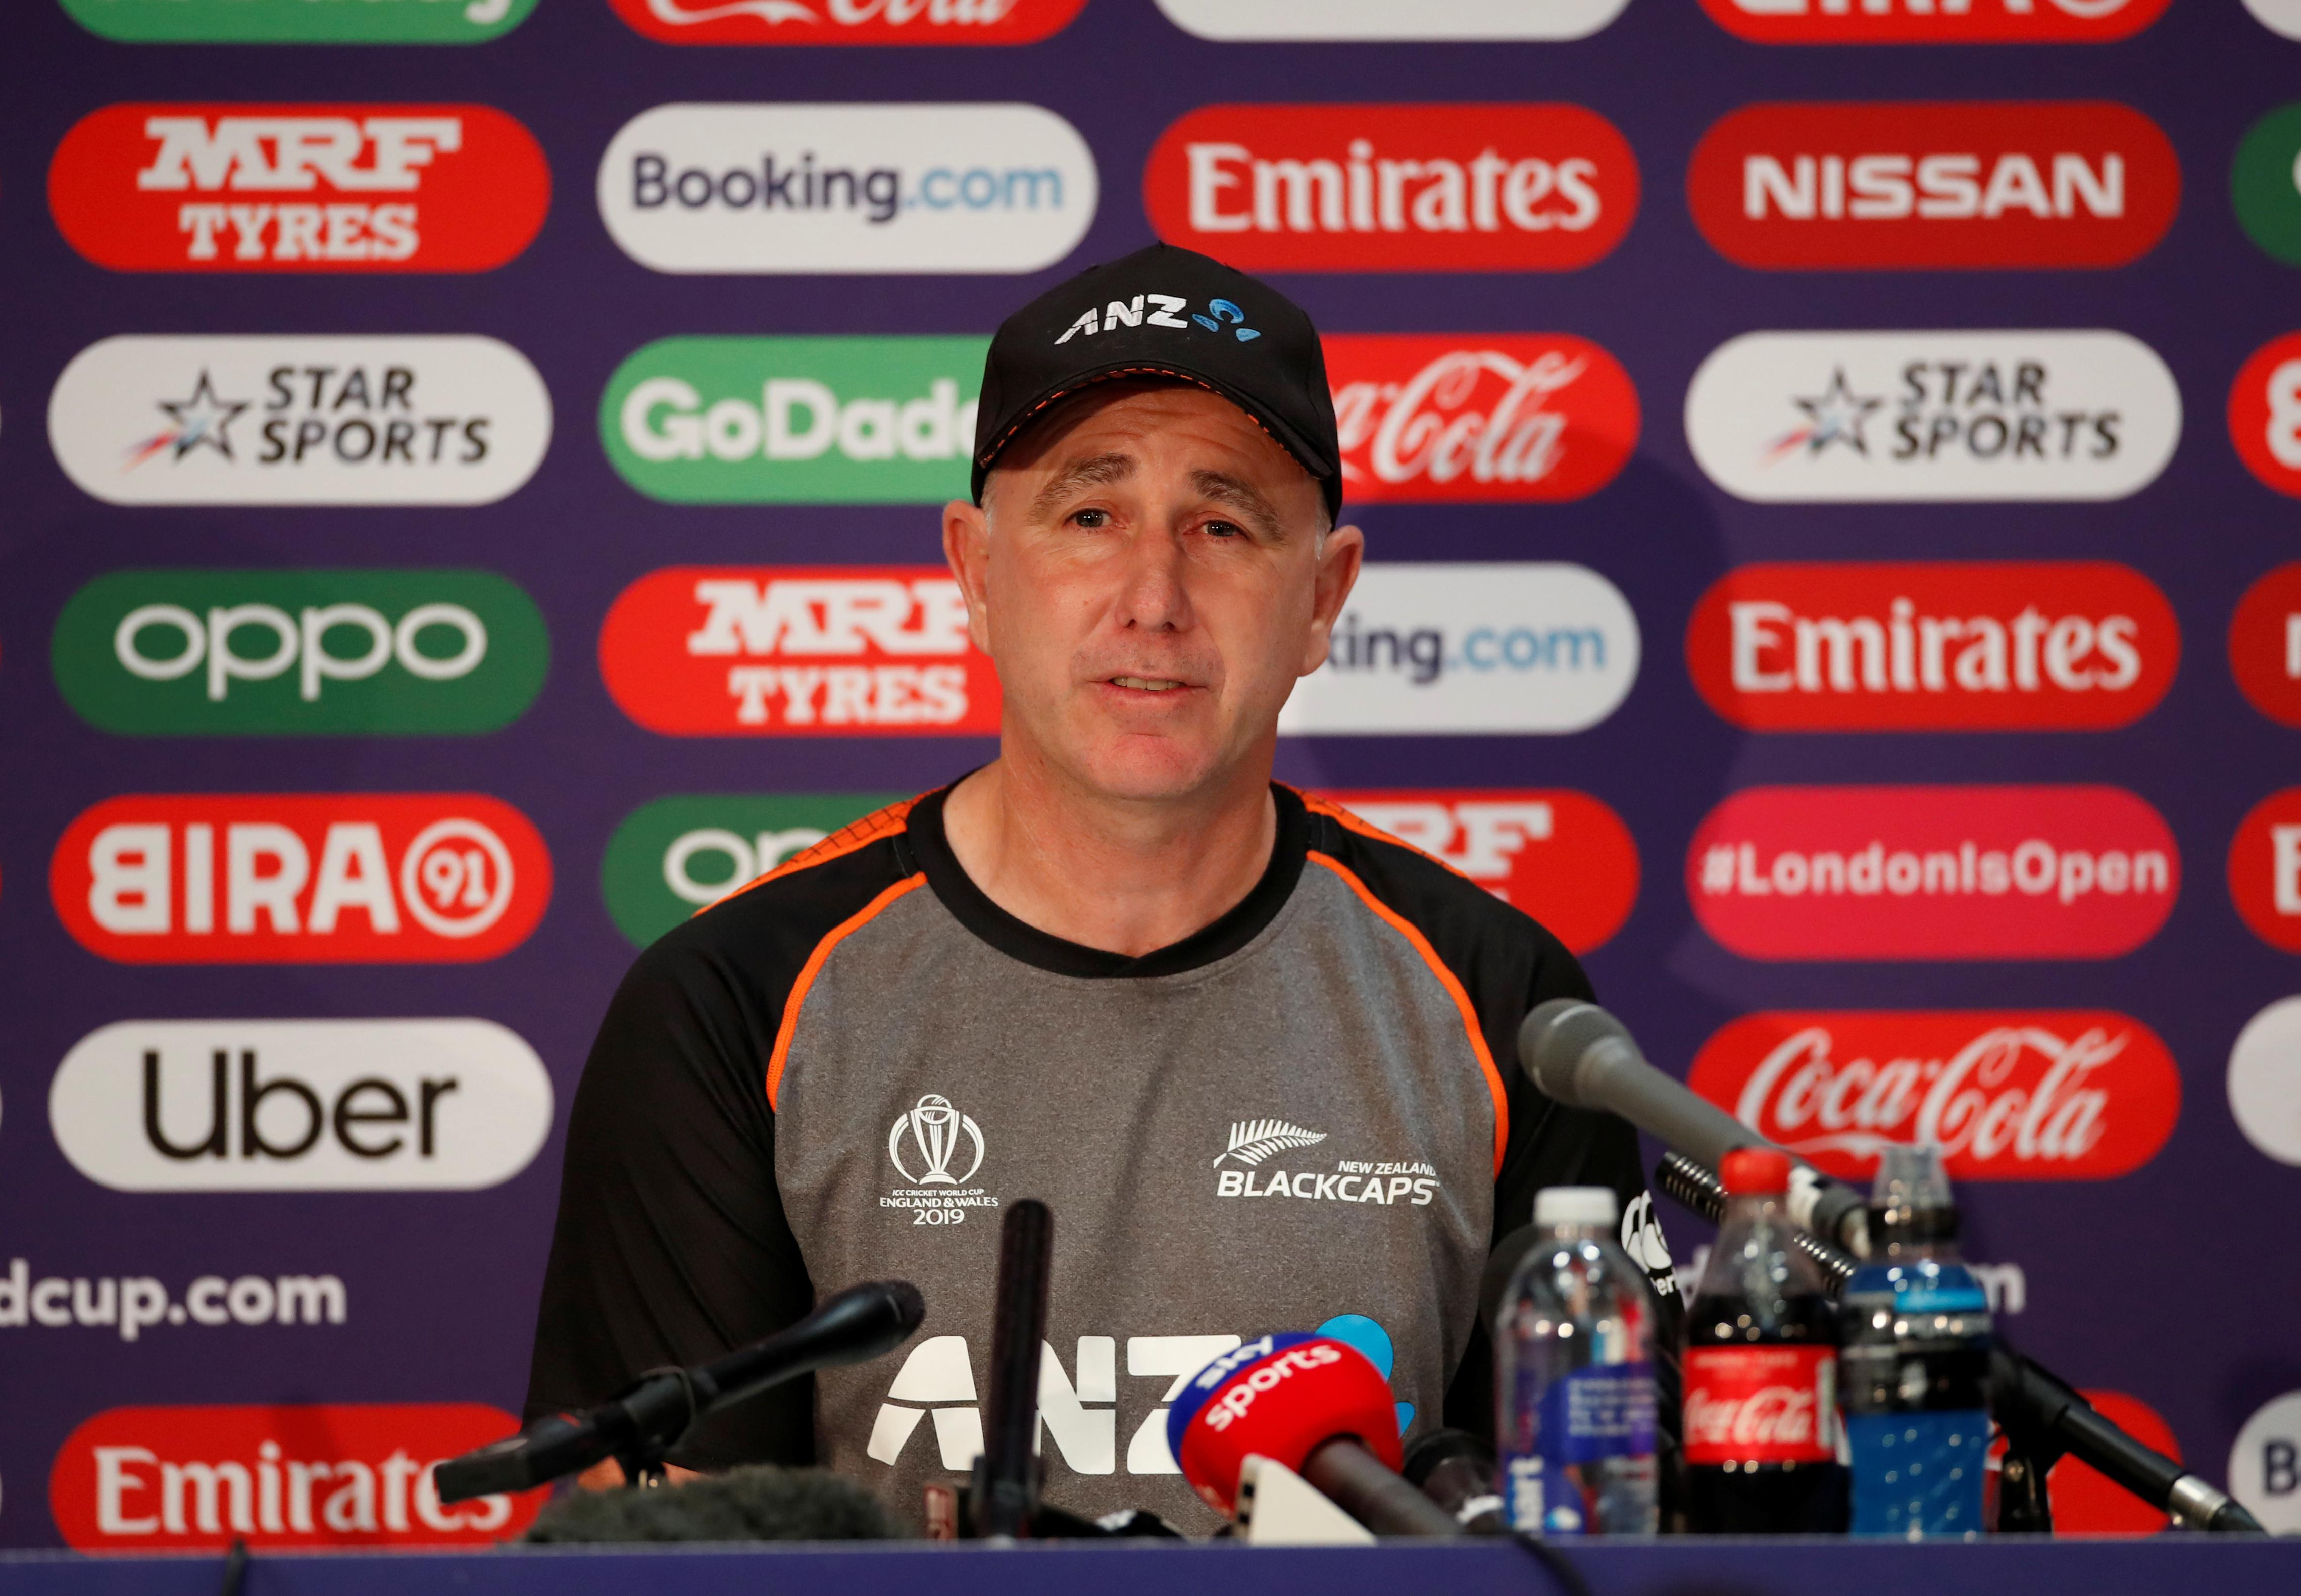 New Zealand coach says umpires are 'human' amid rule debate